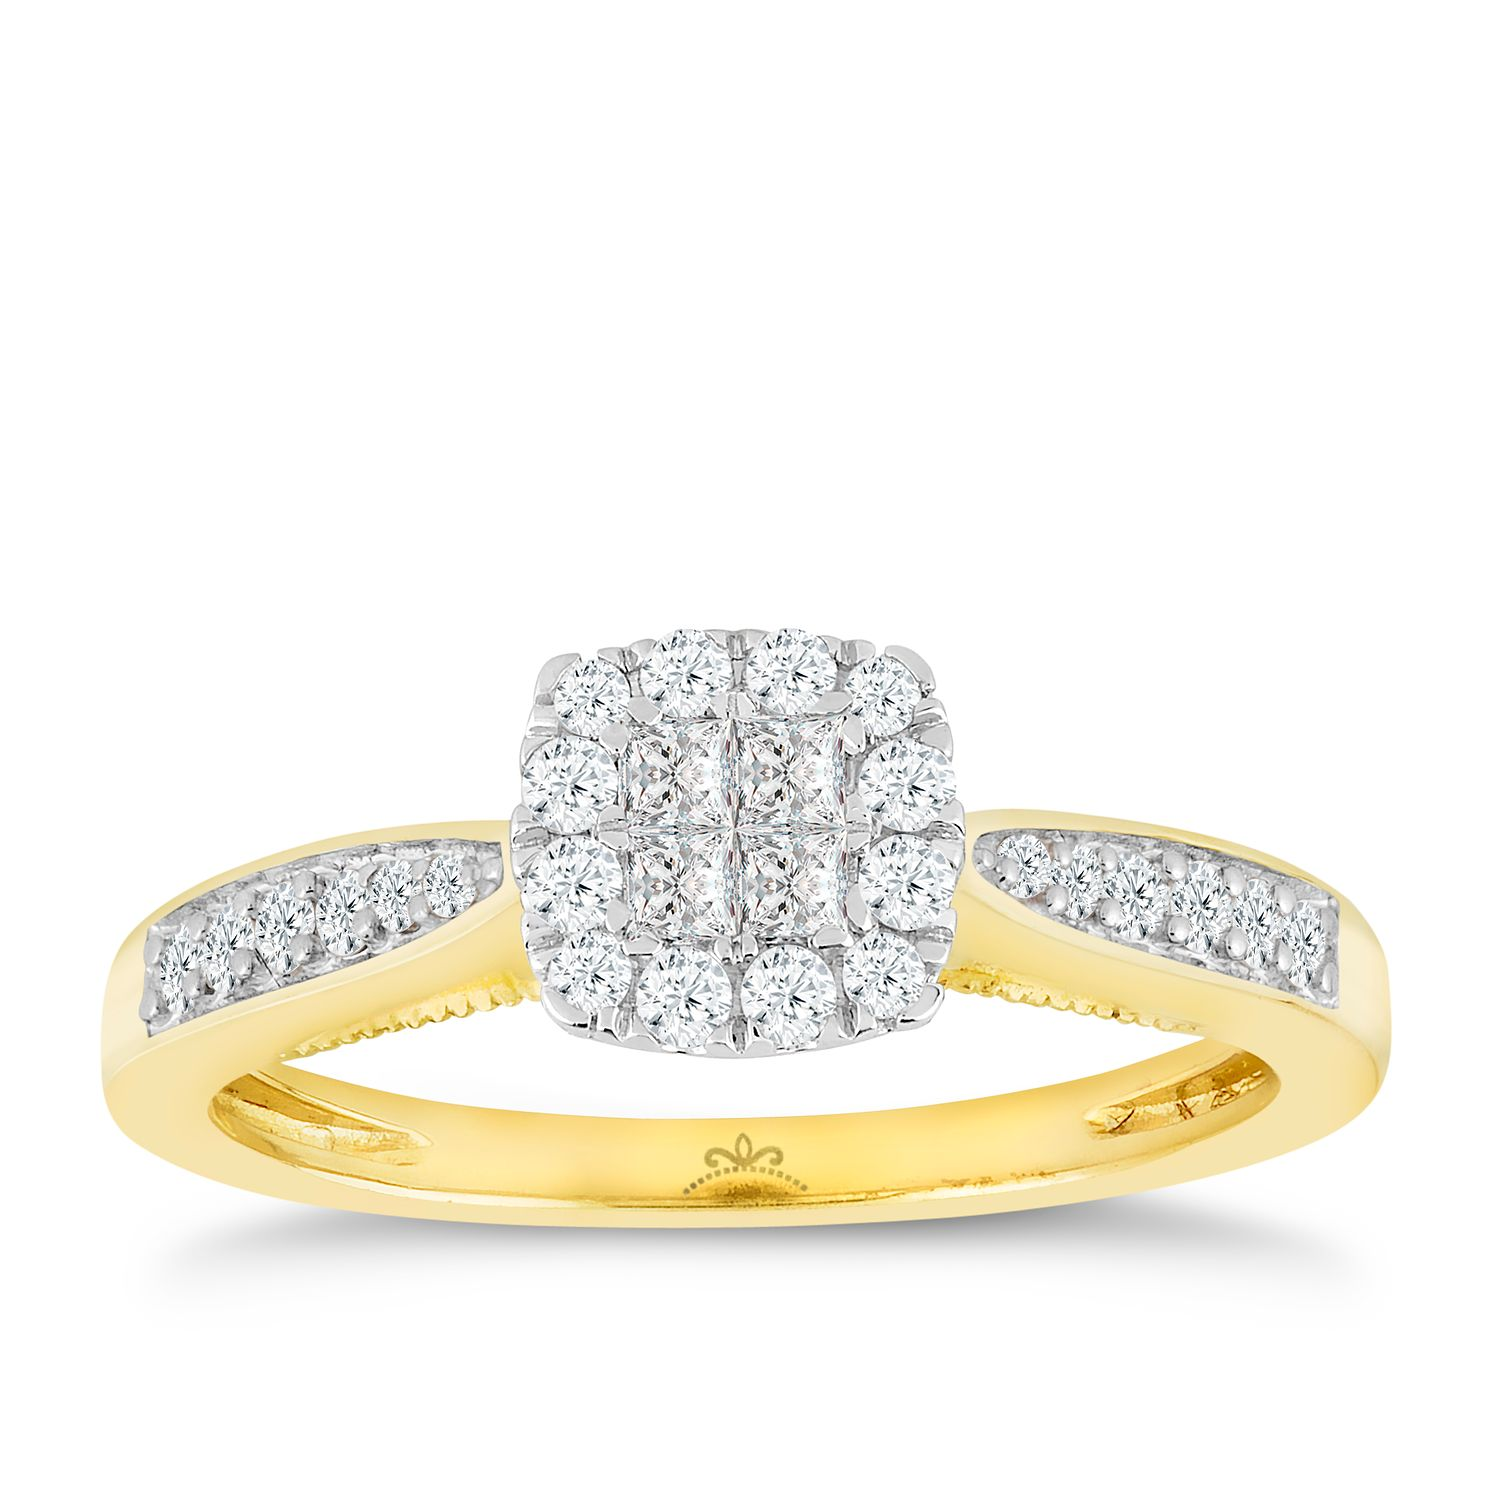 rings engagement set com jewelry her women amazon trio yellow men gold his wedding diamond dp